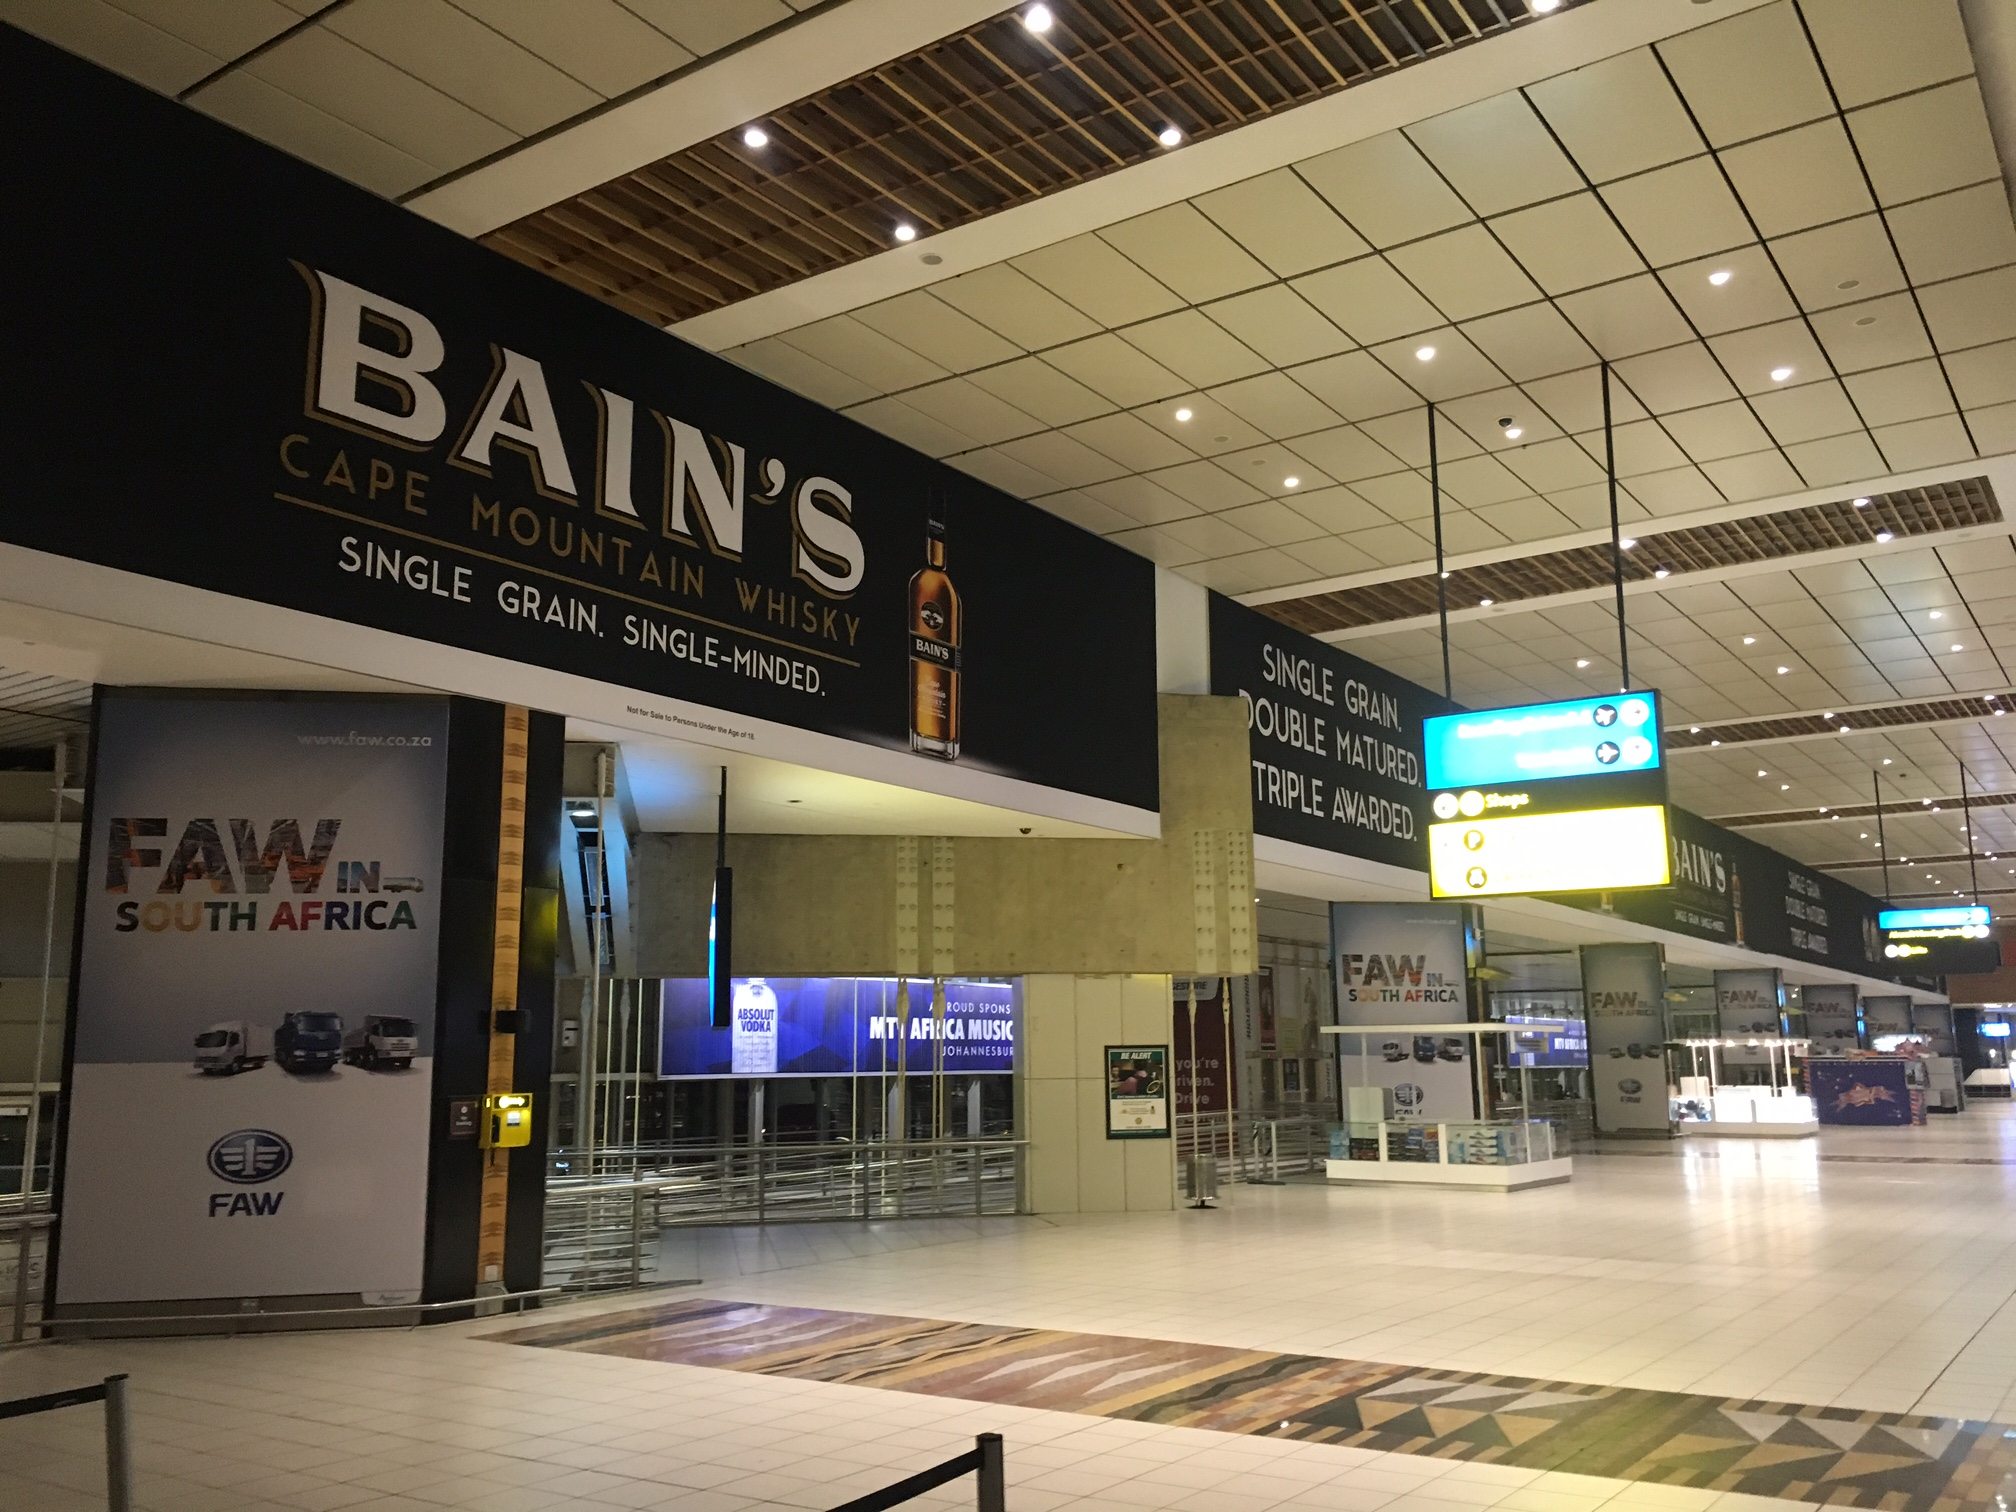 Airport Ads serves up Bain's Single Grain Whisky in Cape Town and Johannesburg photo